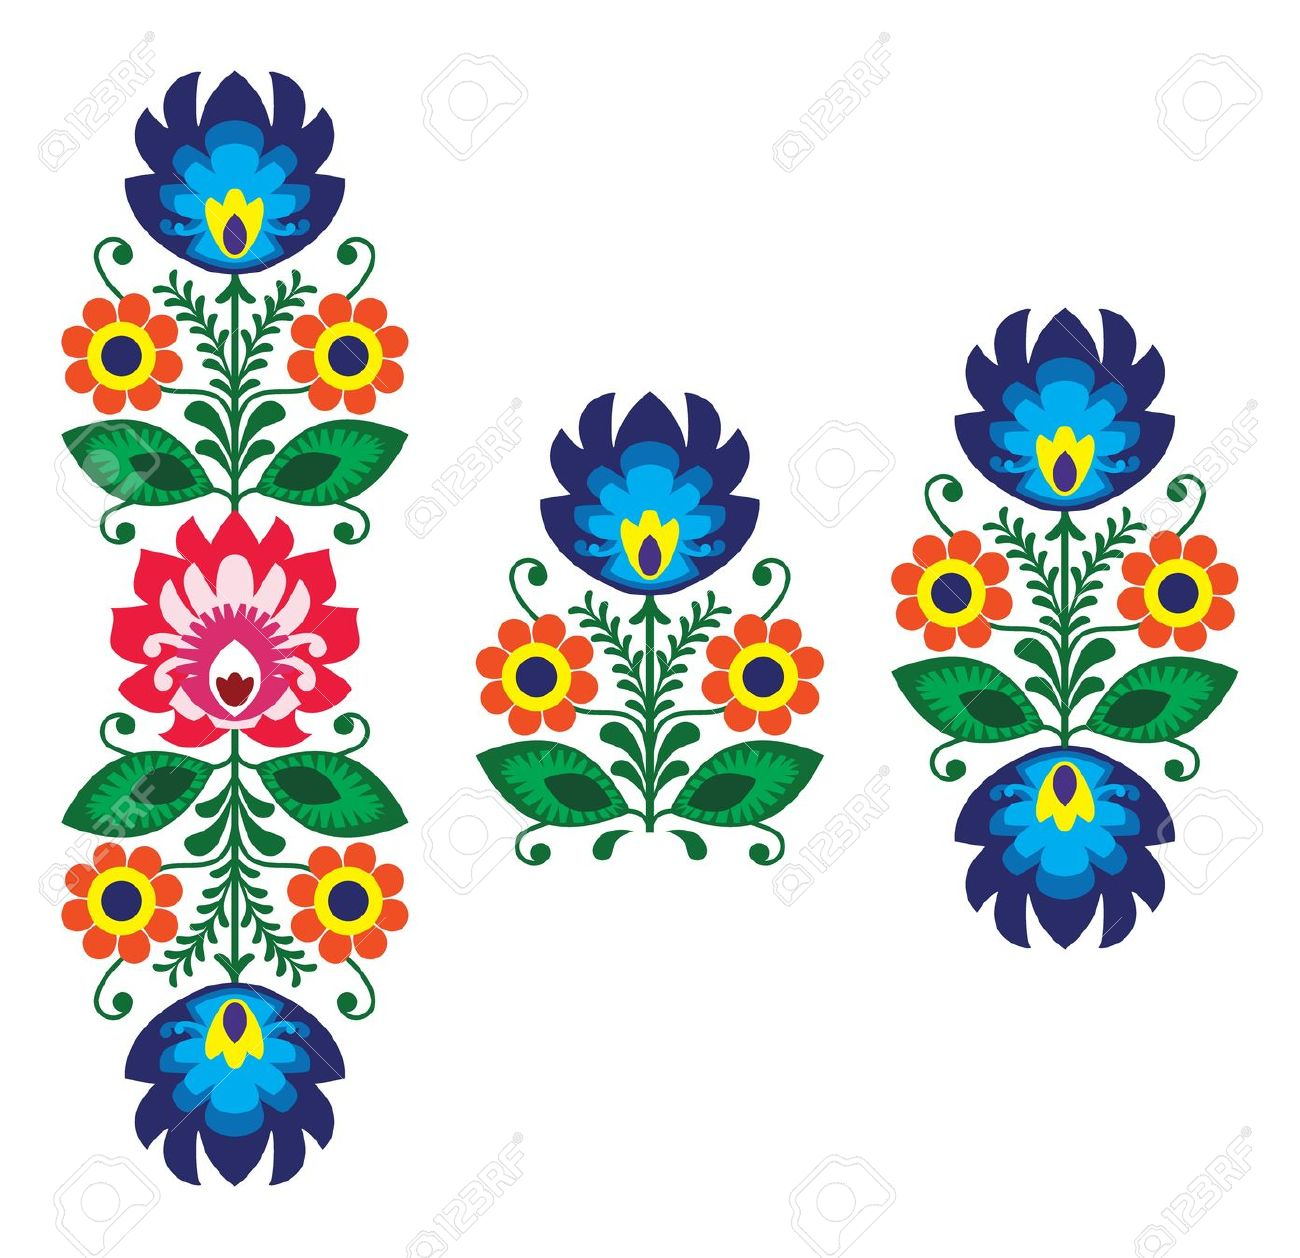 Vector embroidery clipart.